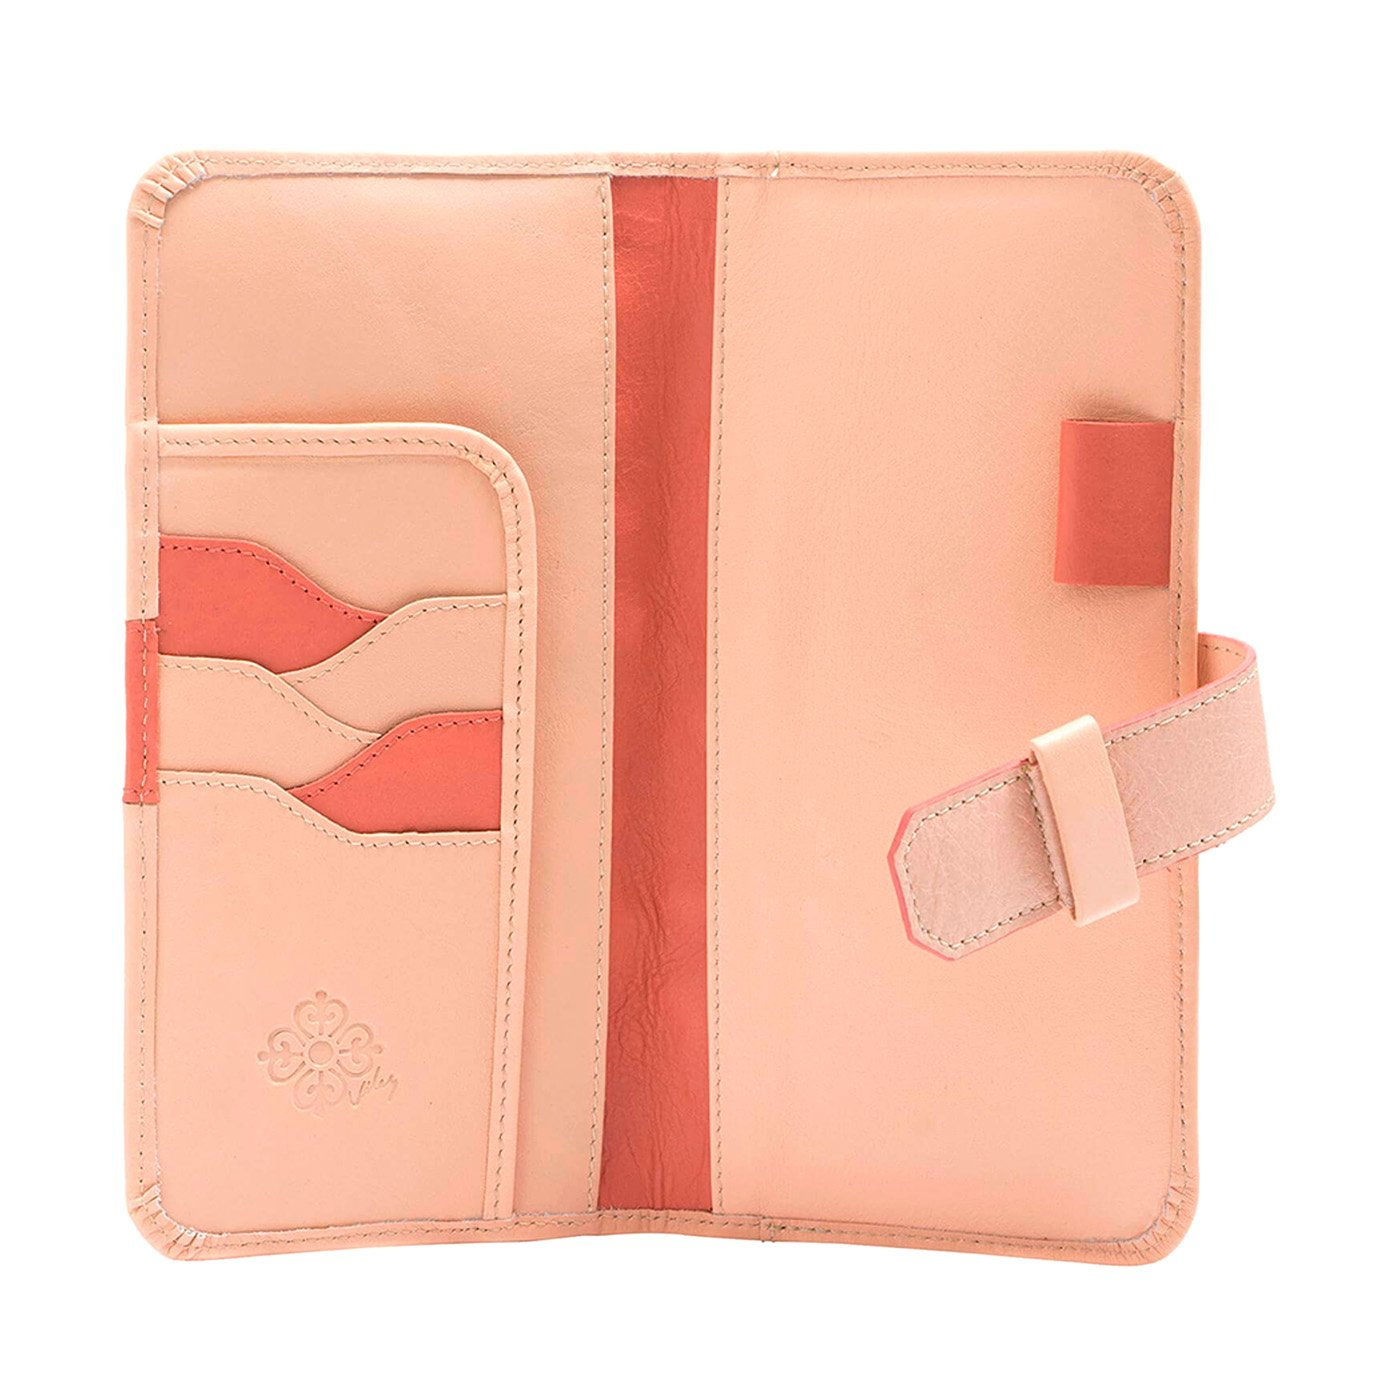 Amazon.com | Velez Women Cute Genuine Colombian Leather Passport Holder Travel ID Wallet Case For Small Purse | Porta Pasaporte de Cuero Colombiano Mujer ...